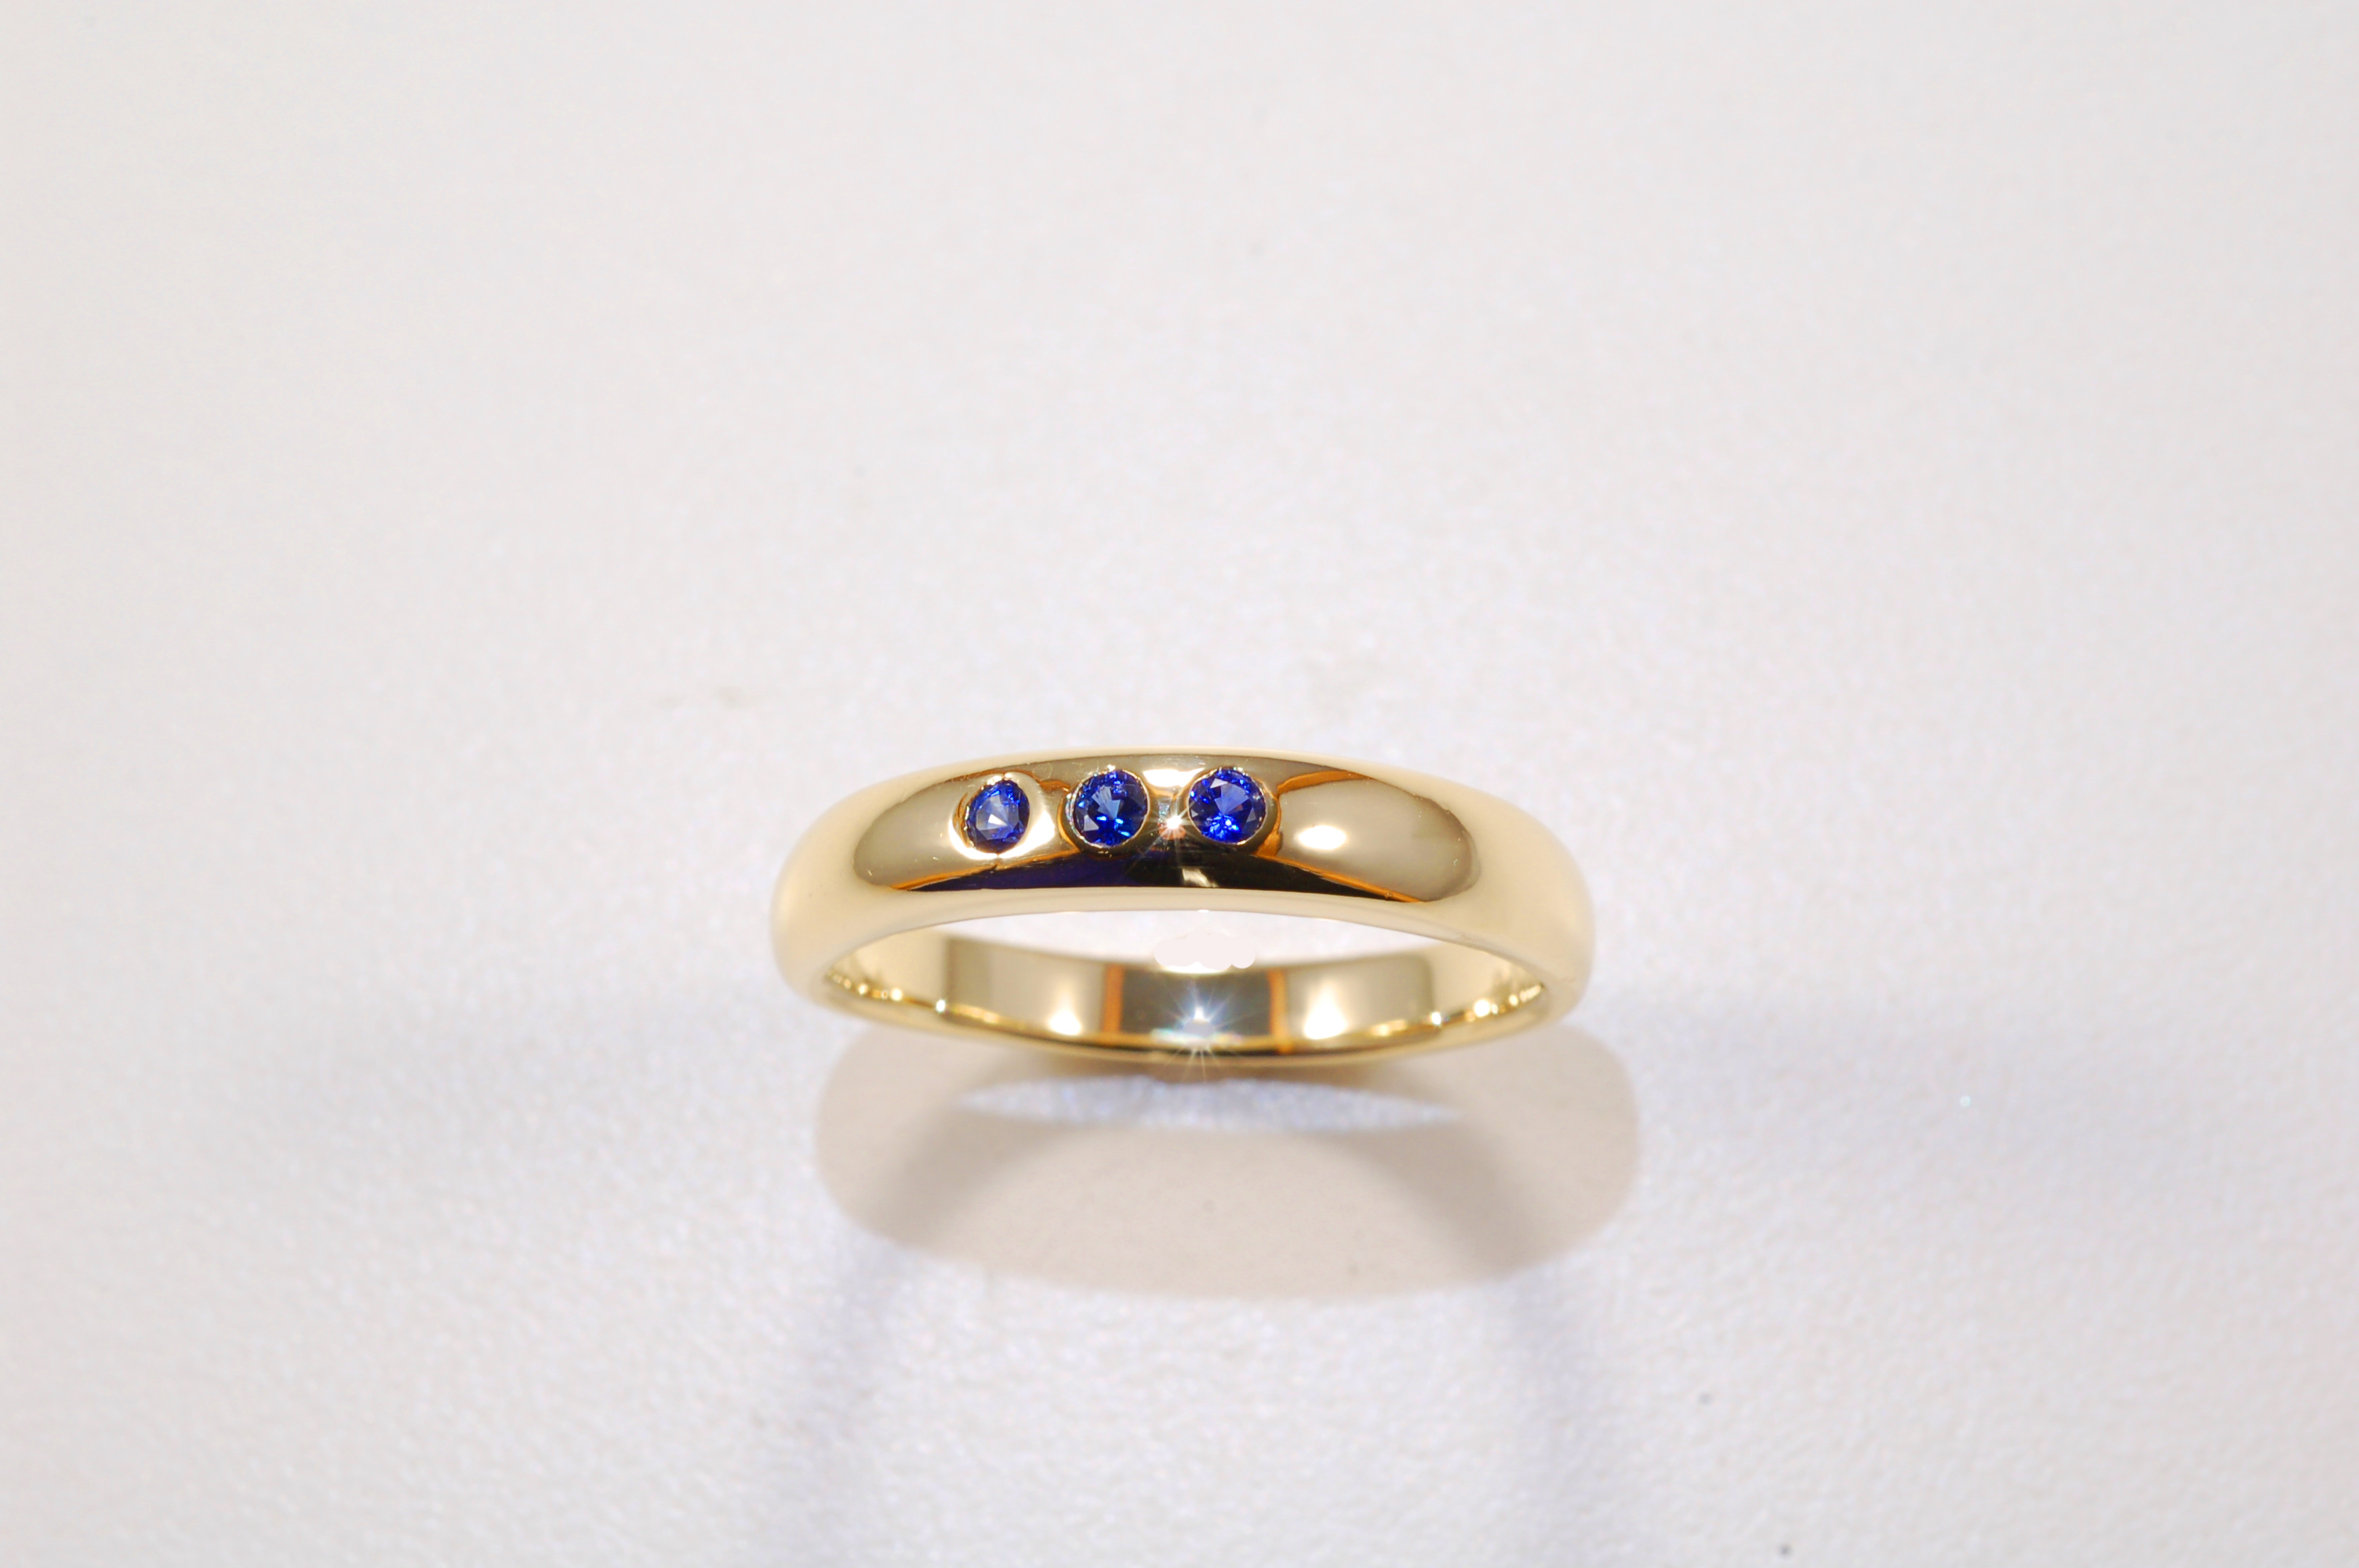 master j sapphire and sale cleef van pave arpels cocktail rings for golden jewelry ring gold at id